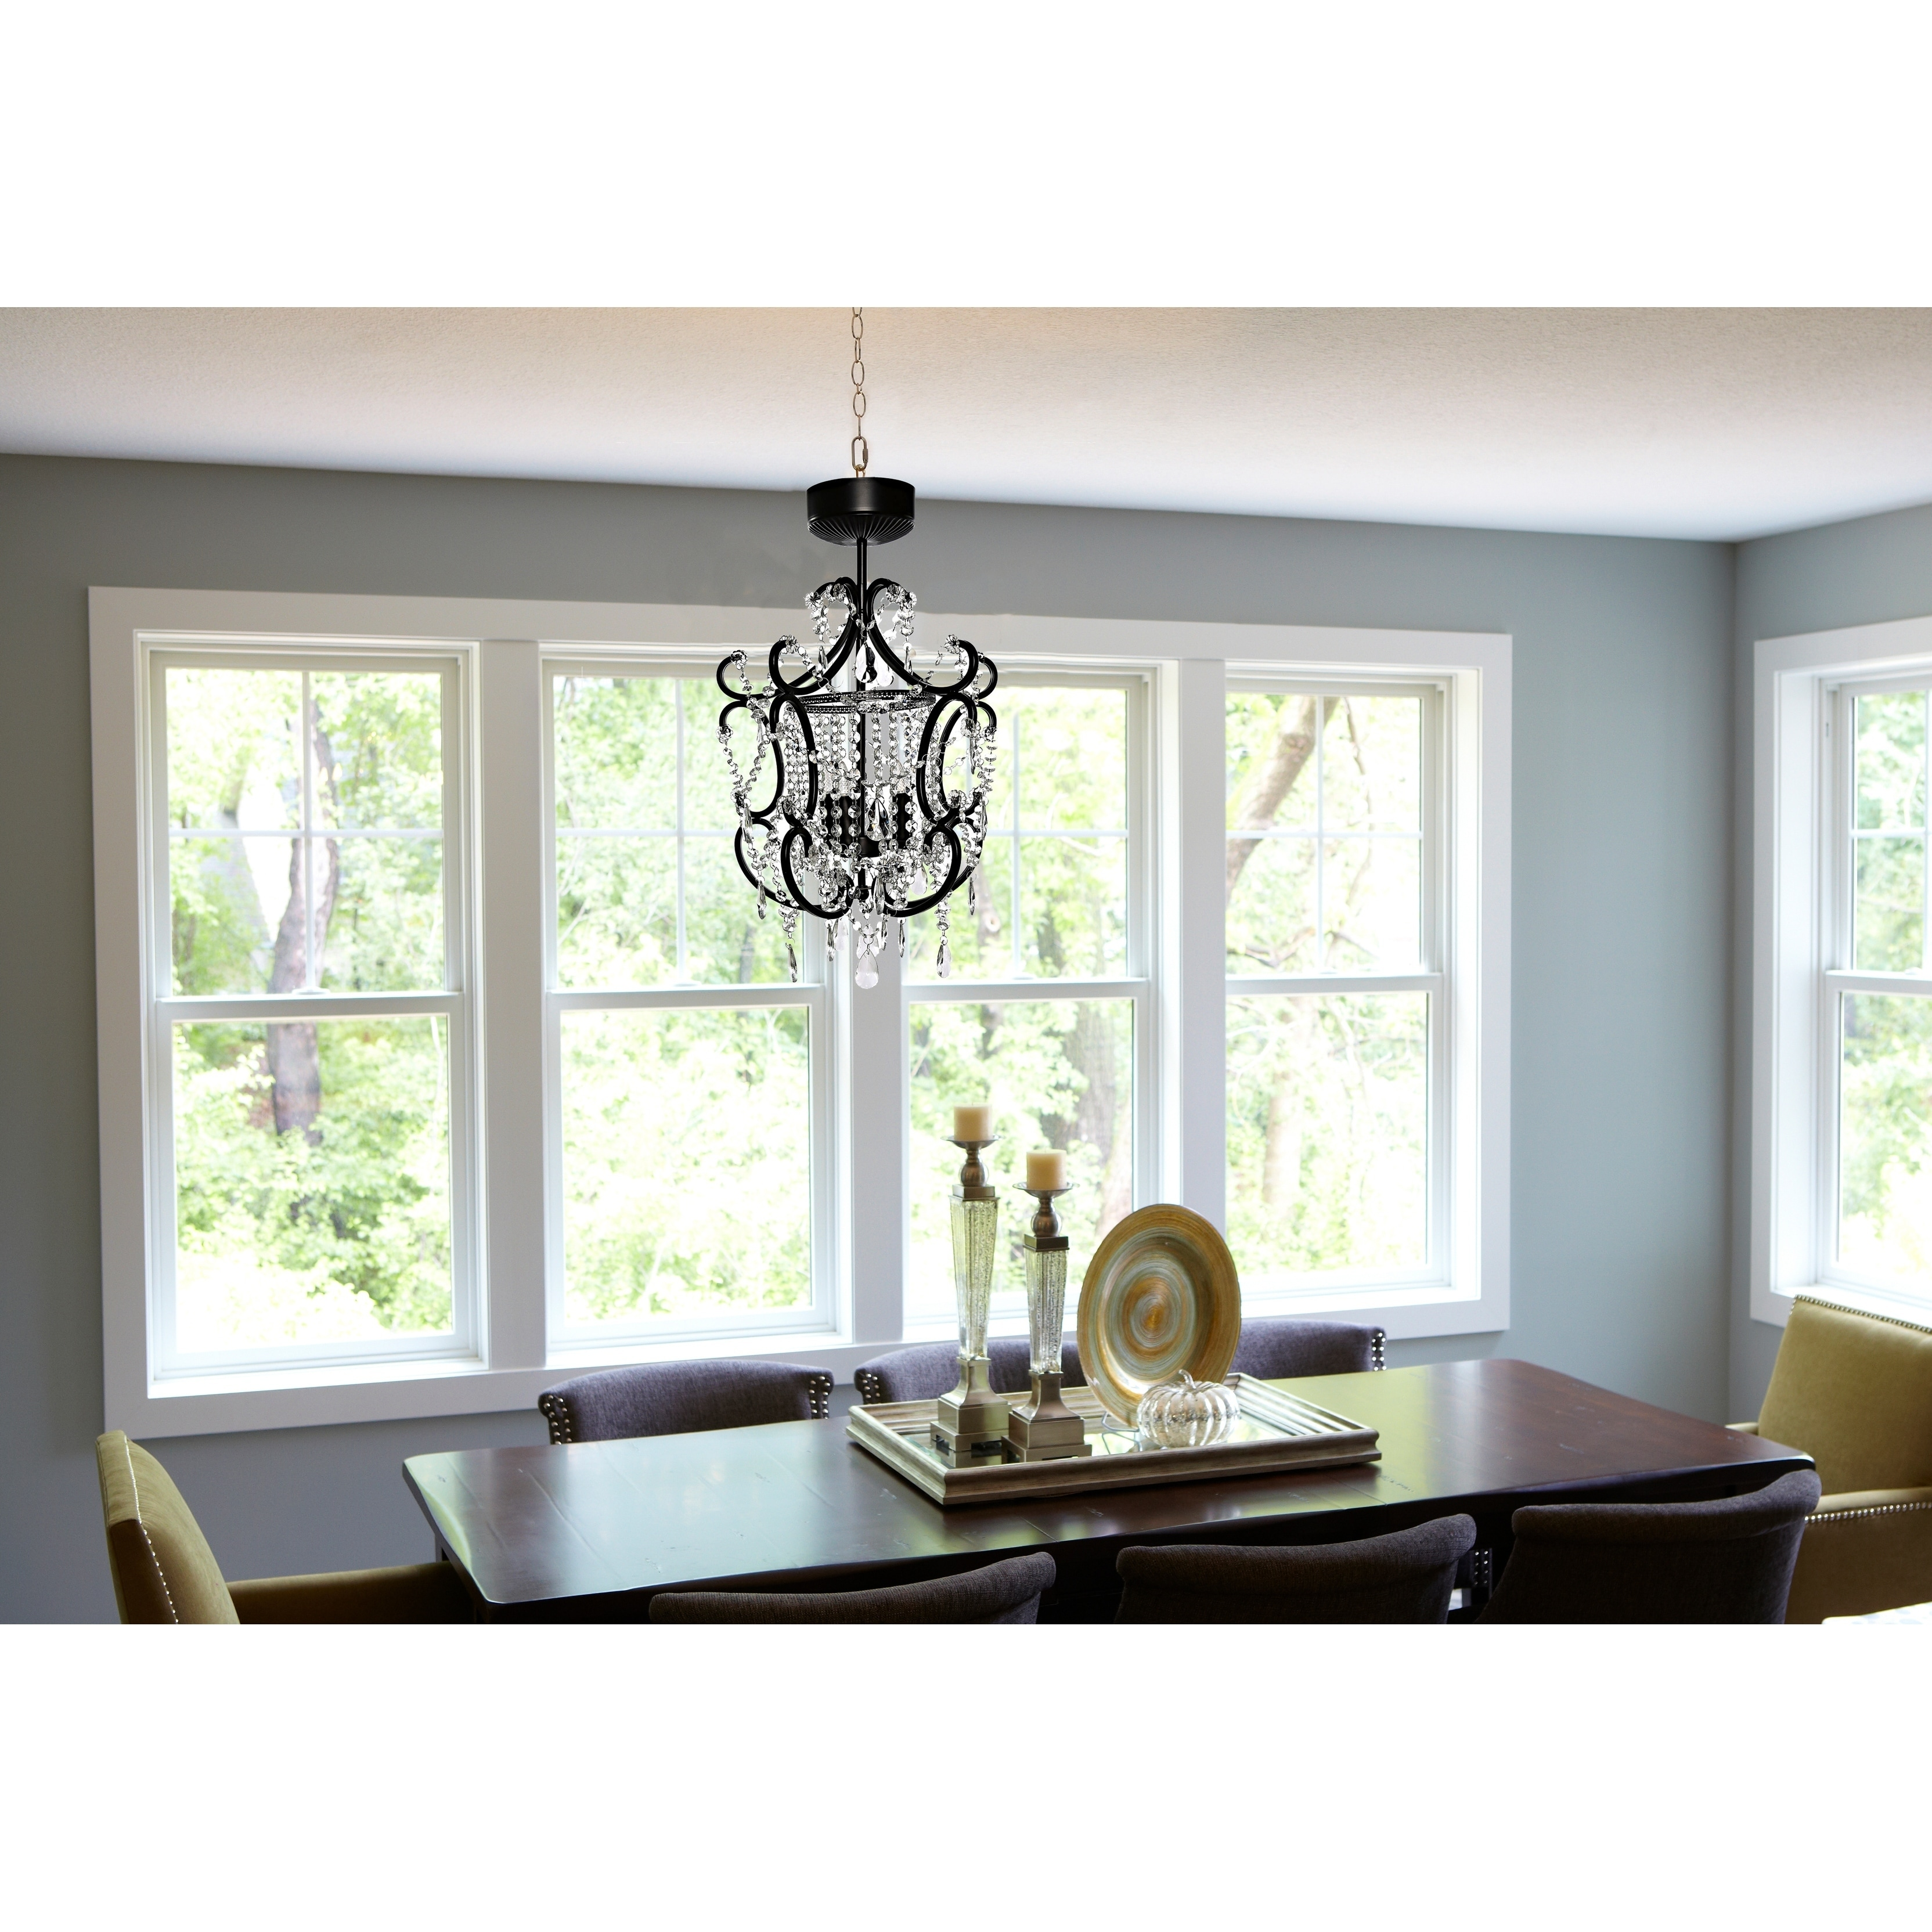 Shop poetic wanderlust tracy porter crystal cordless chandelier with shop poetic wanderlust tracy porter crystal cordless chandelier with remote free shipping today overstock 16173264 aloadofball Choice Image